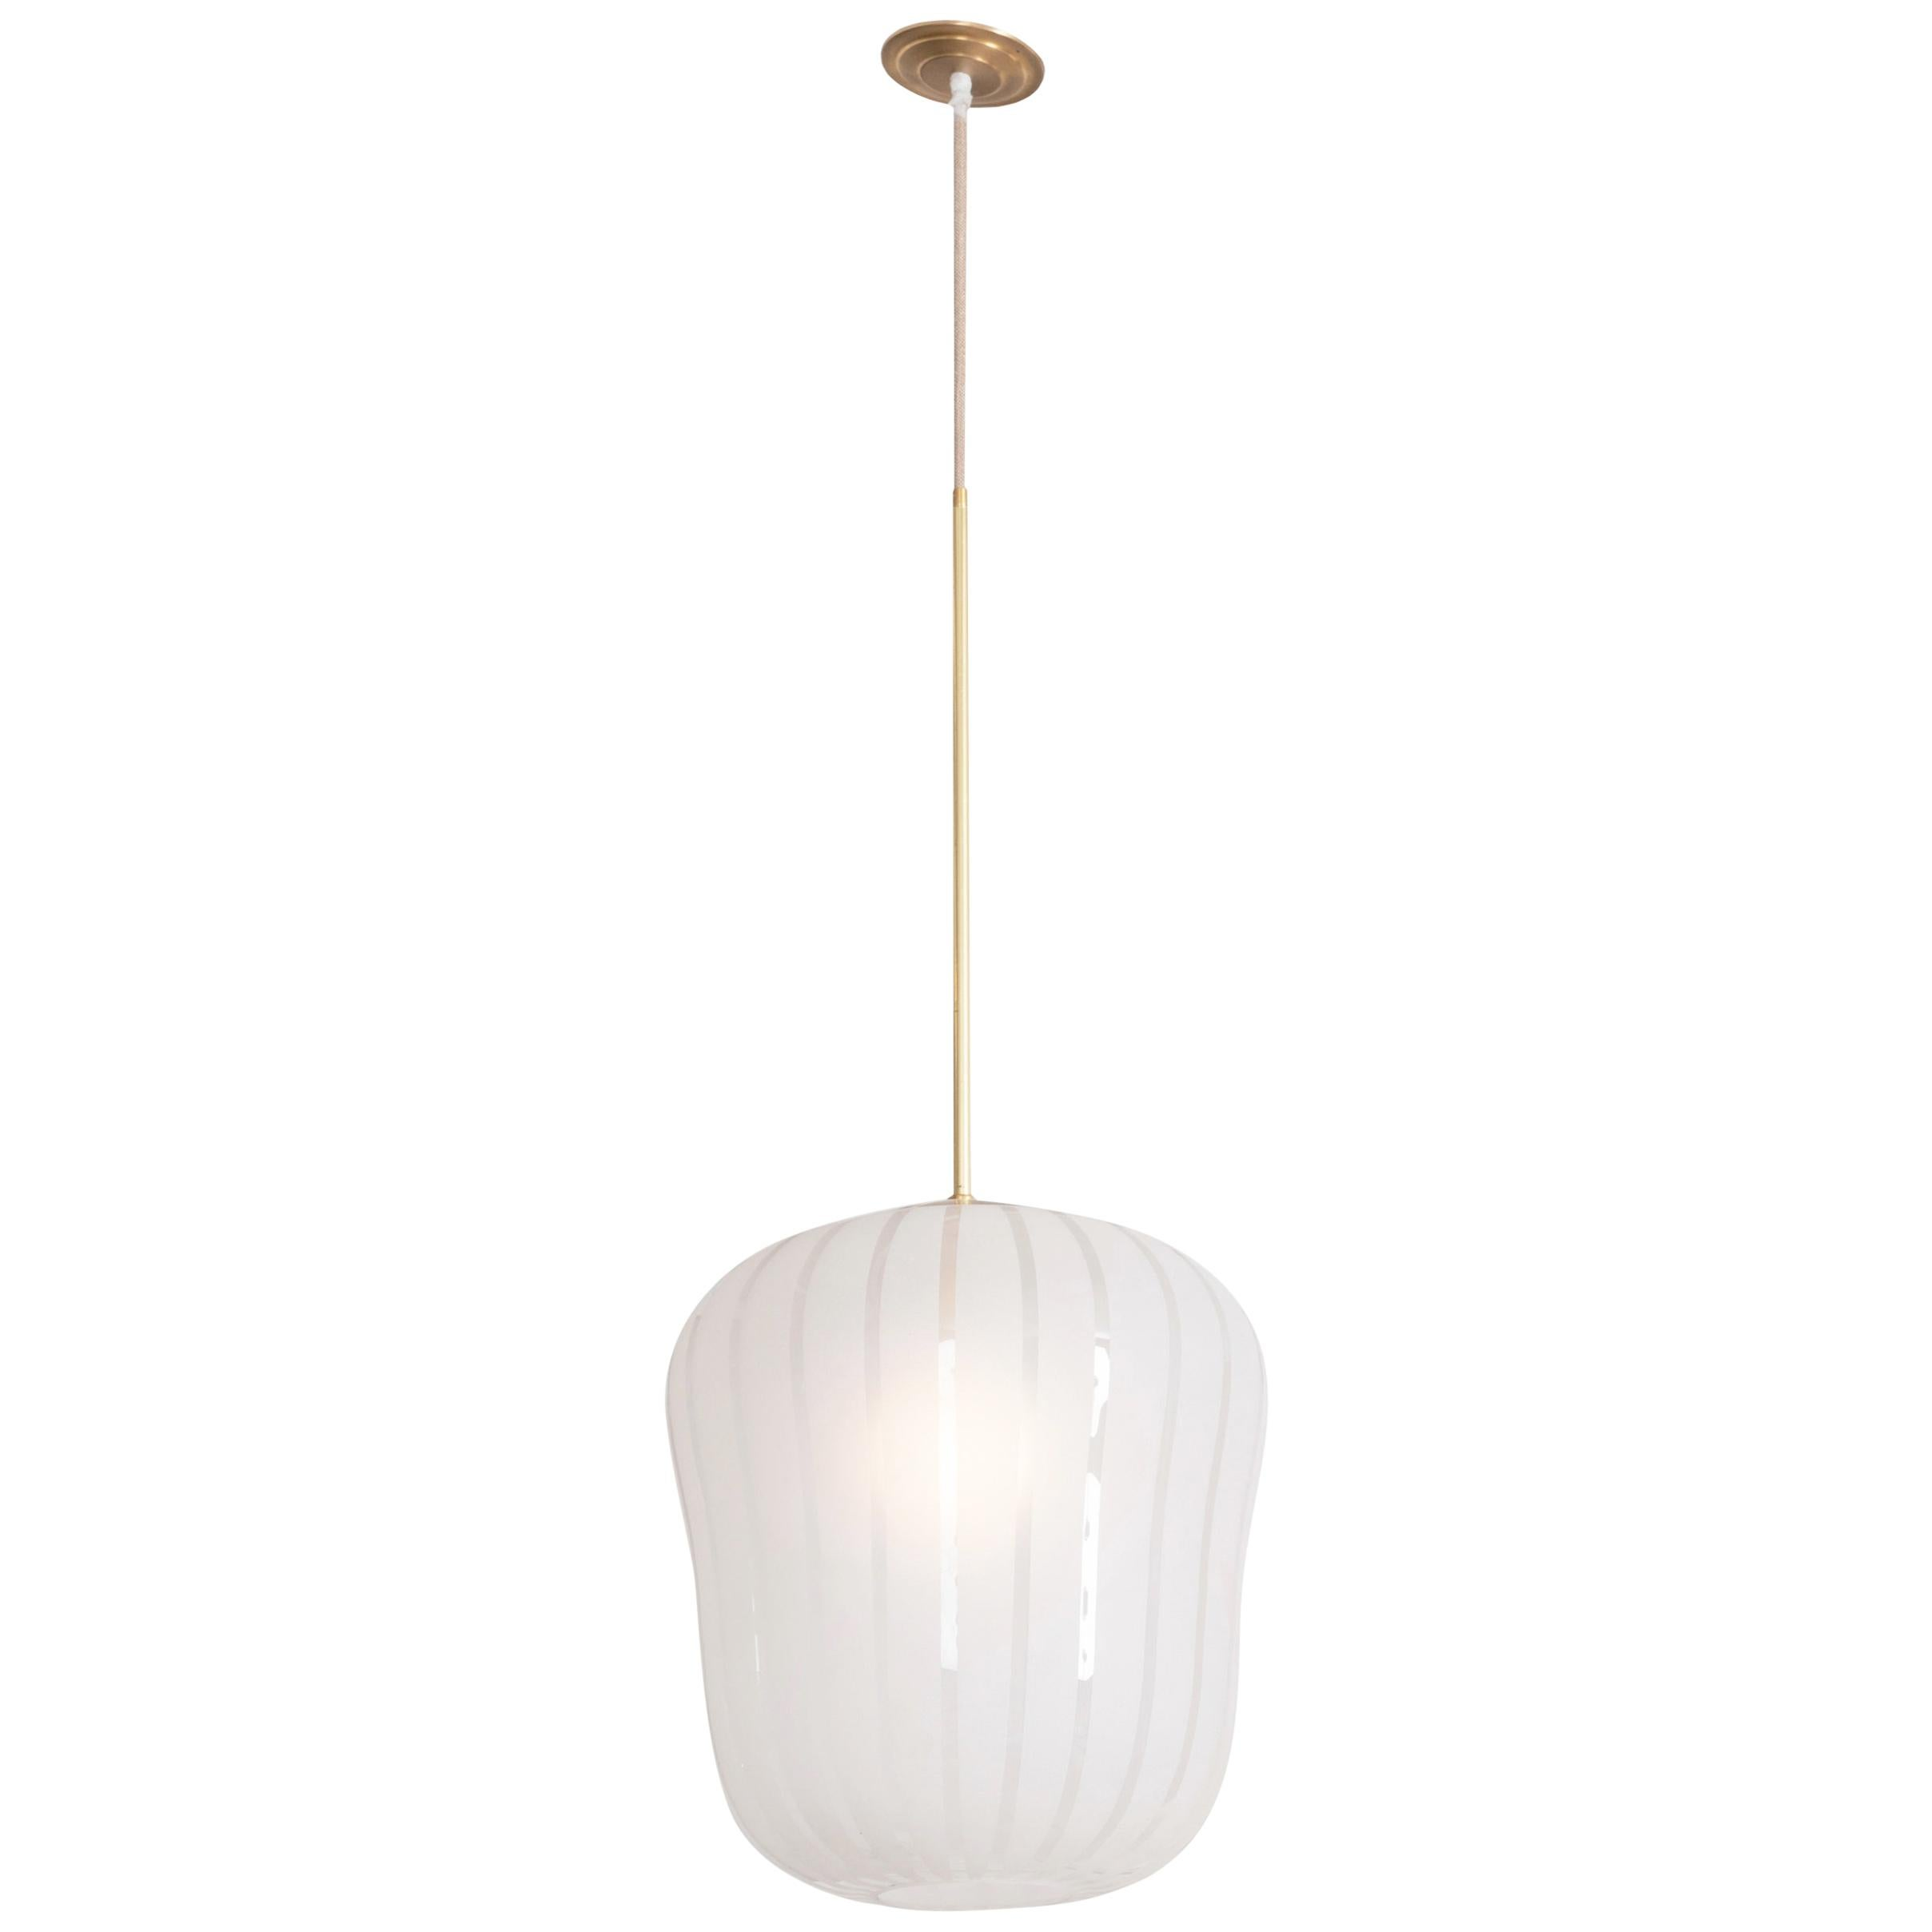 Orrefors Ceiling Fixture by Gunnel Nyman